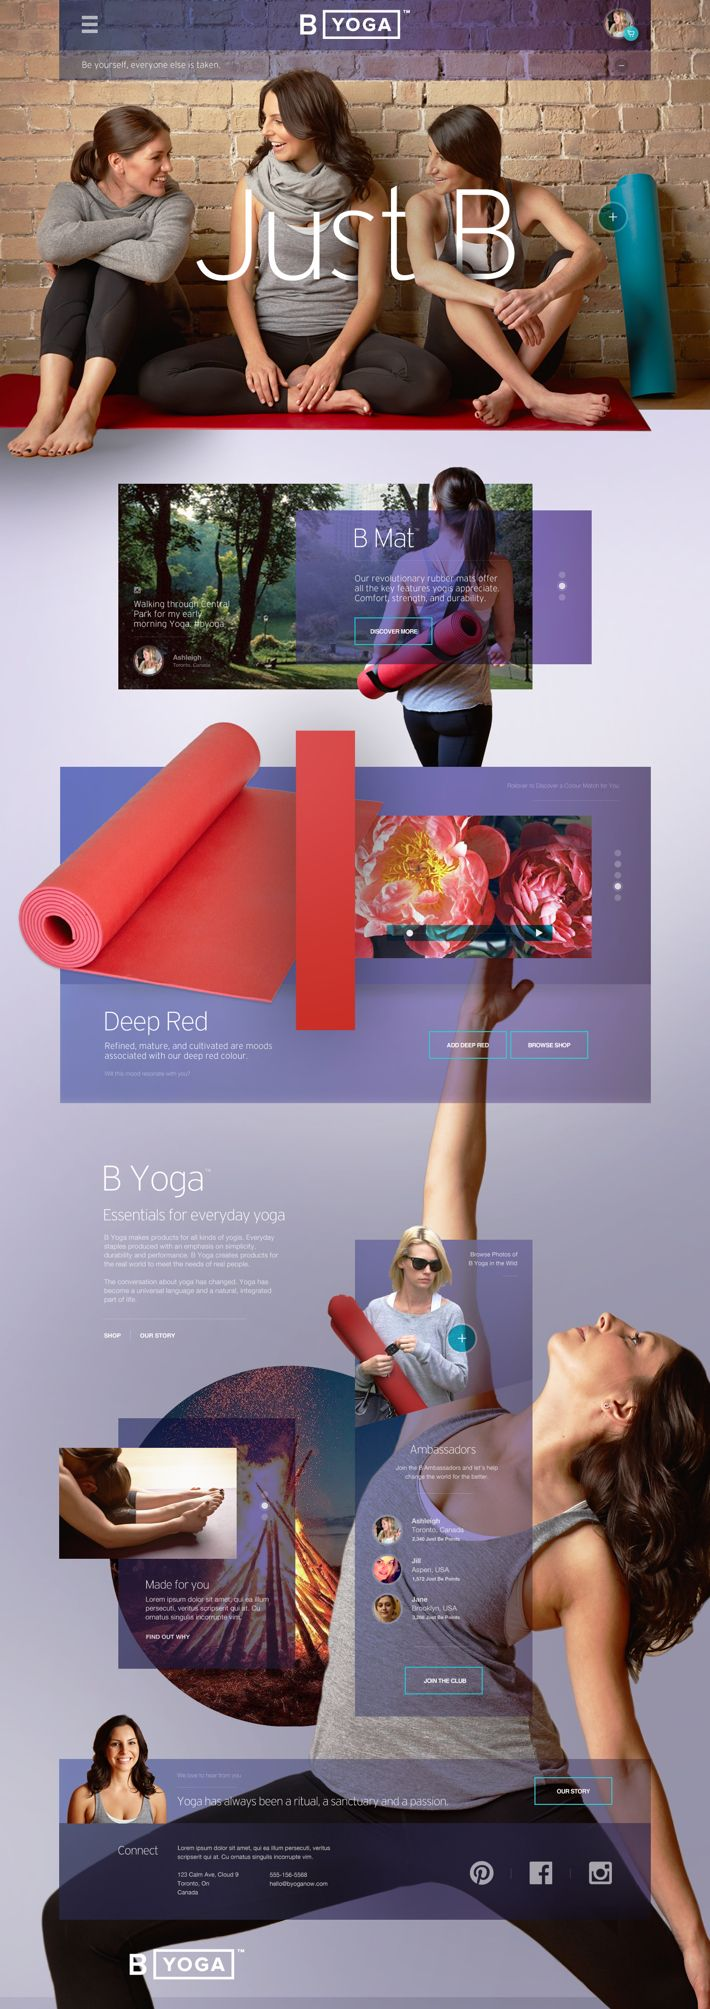 B Yoga Website : Post Launch Revisit v2 by John Speed, via Behance #webdesign #wordpress #canada #interactive